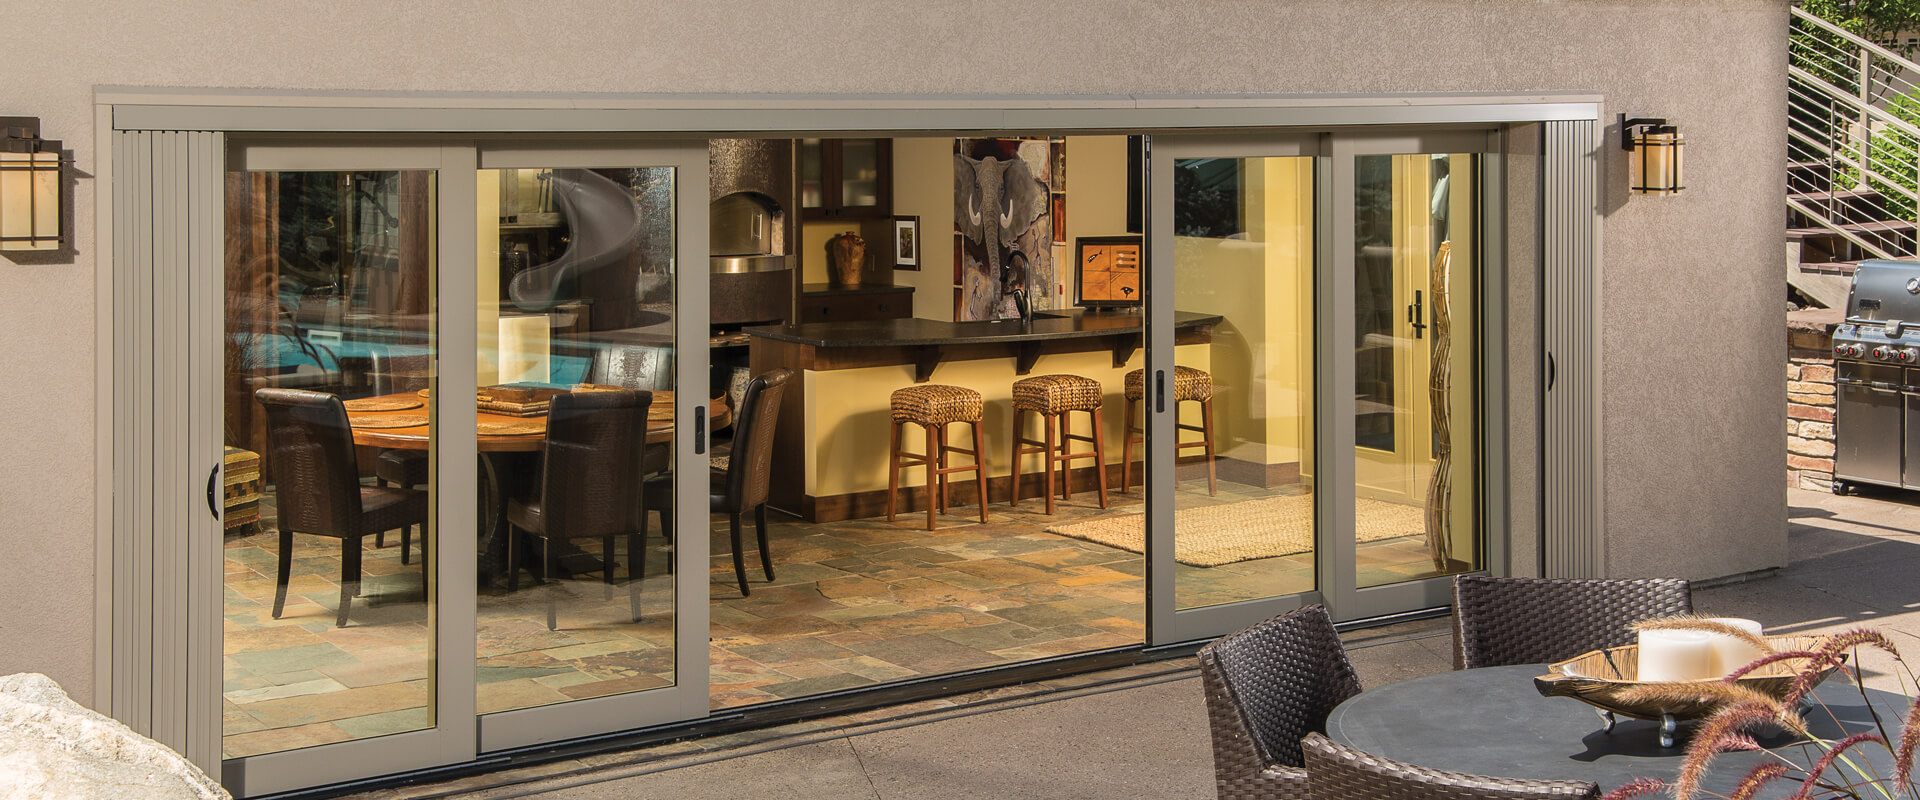 Ultra TerraSpan Lift & Slide Doors Exterior